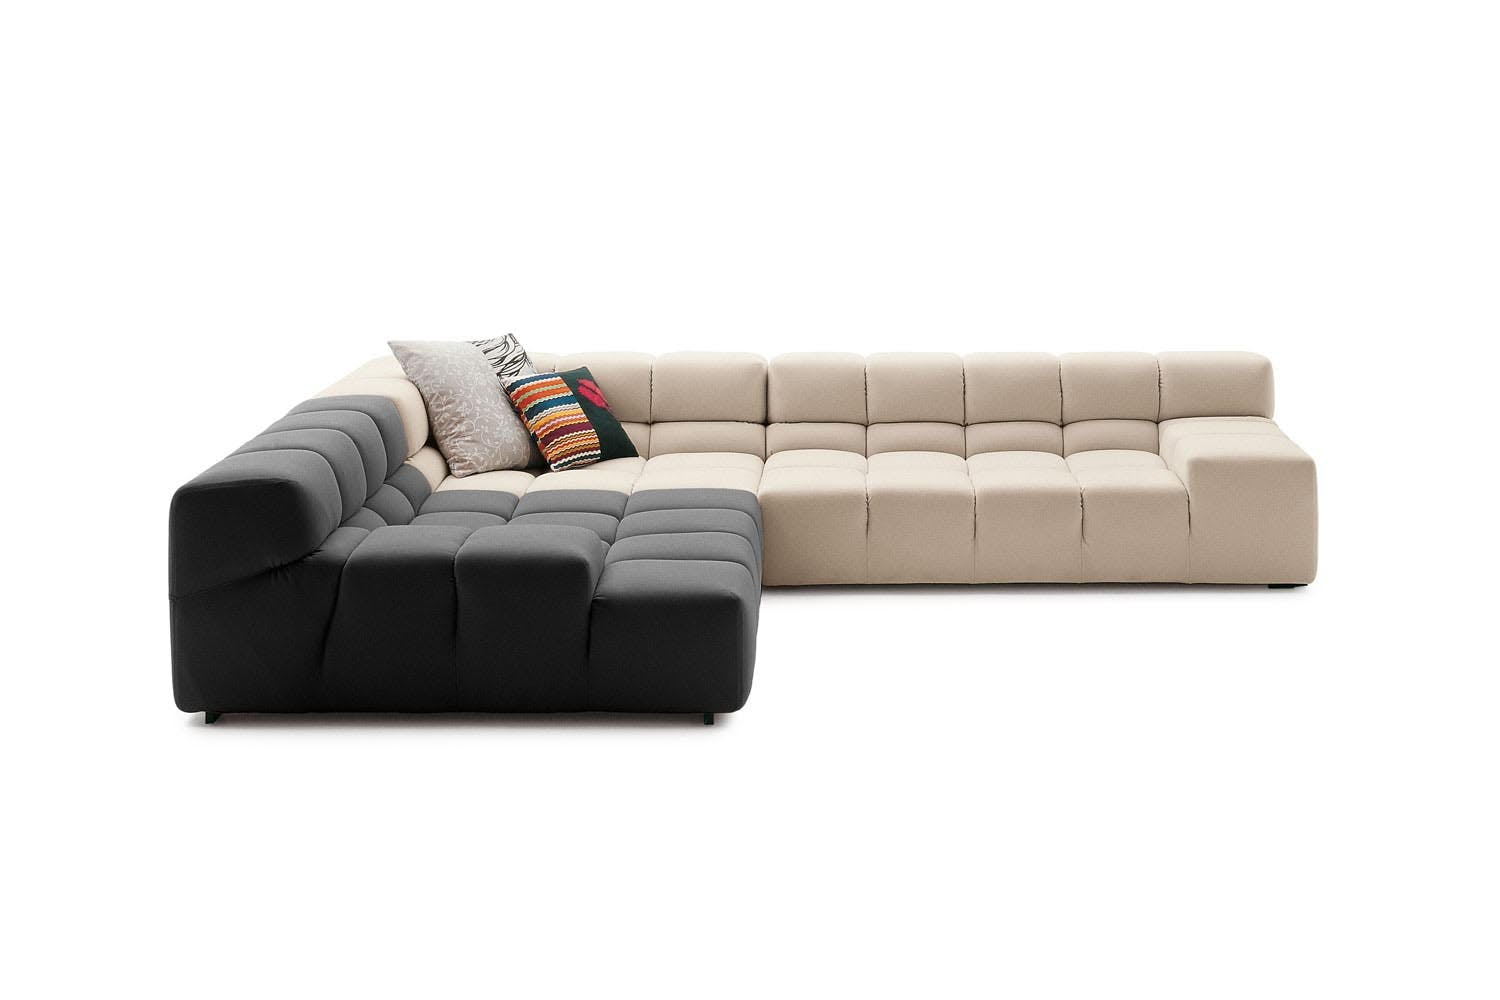 tufty time sofa by patricia urquiola for b b italia. Black Bedroom Furniture Sets. Home Design Ideas